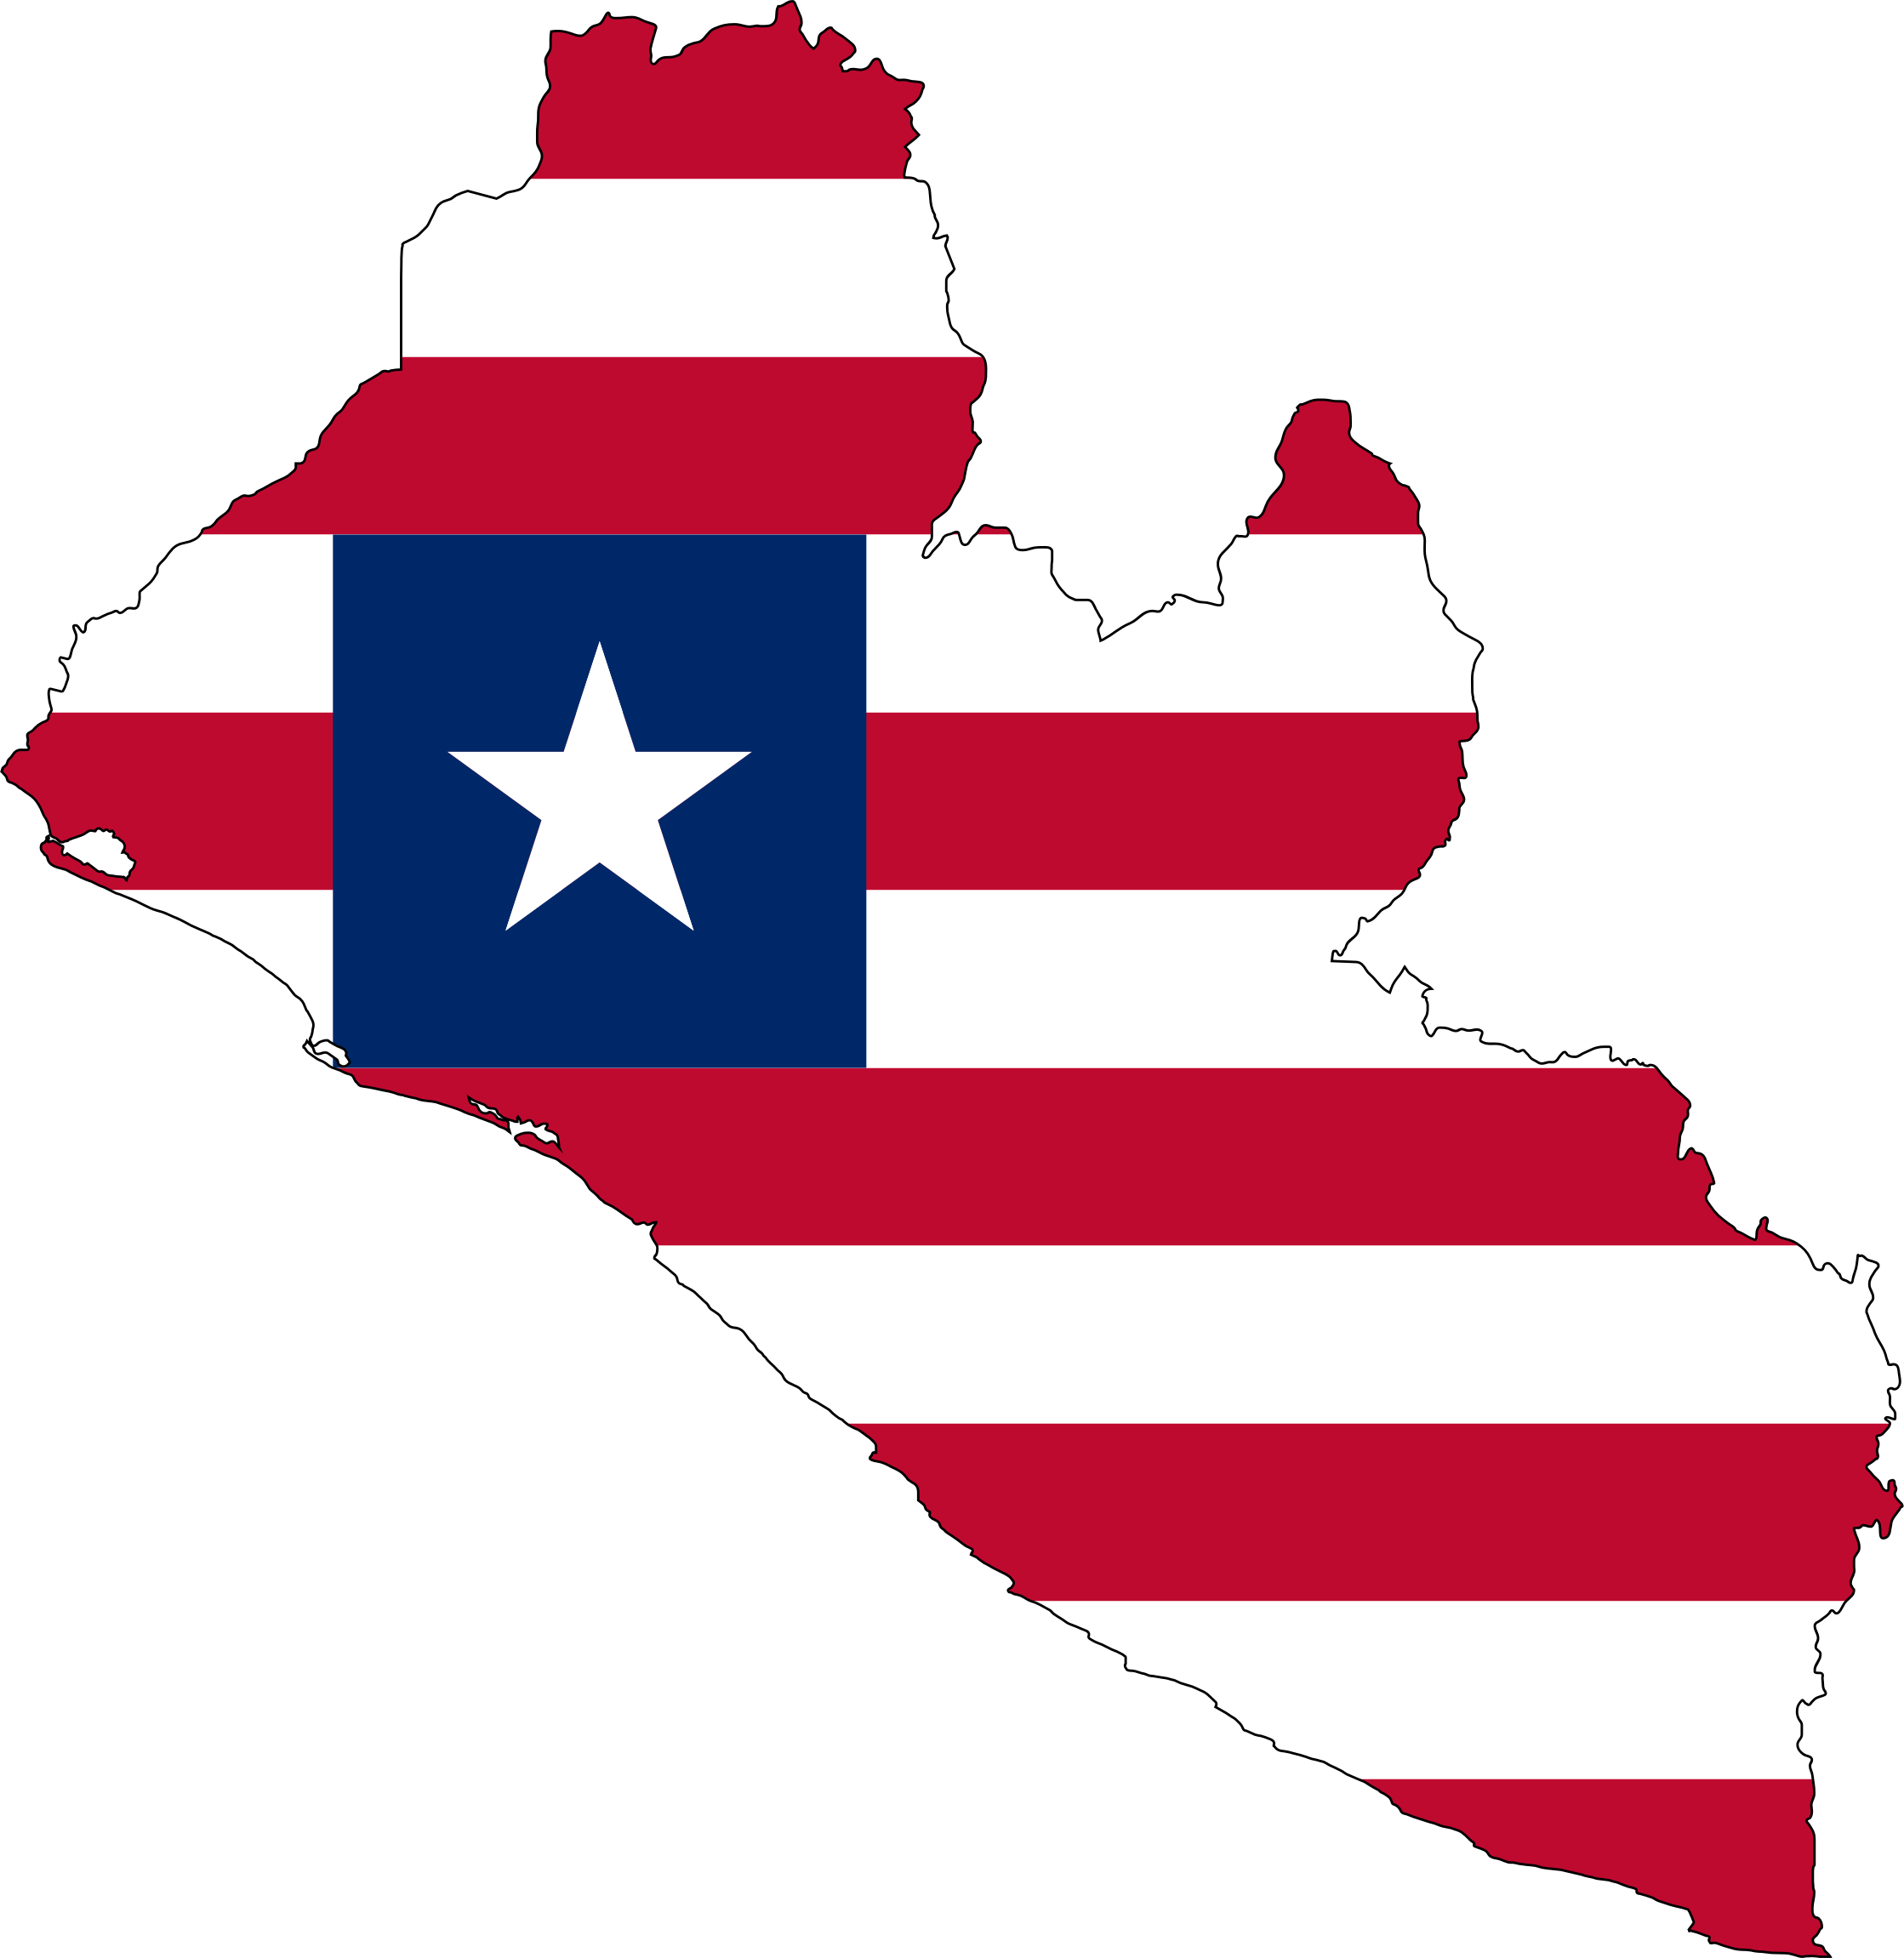 Liberia Flag Map With Stroke by GDJ